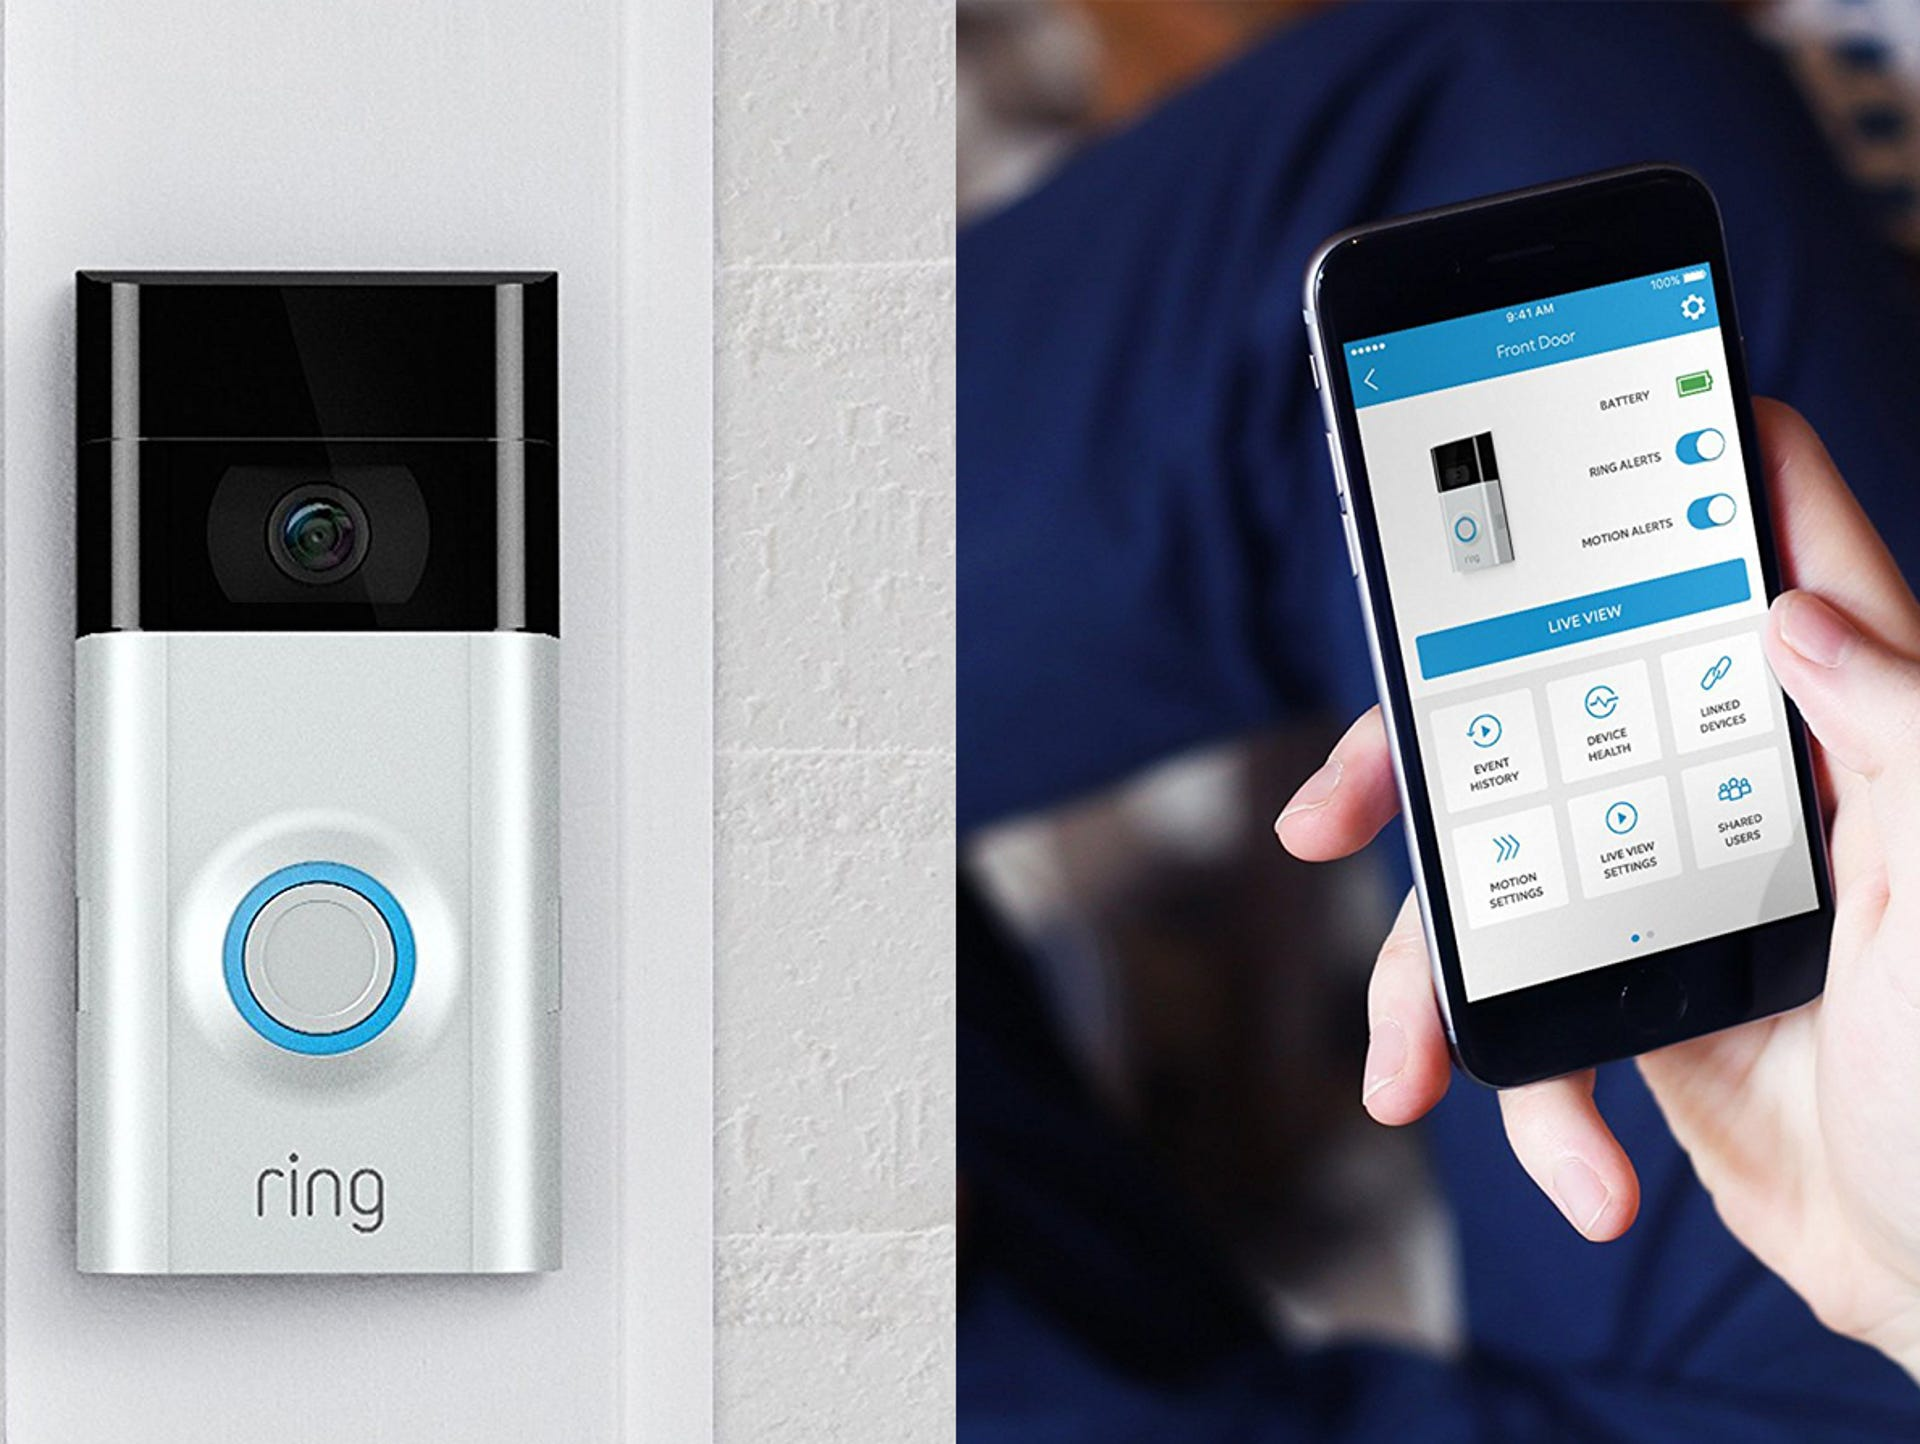 Amazon's Smart Home products, from Ring to Eero